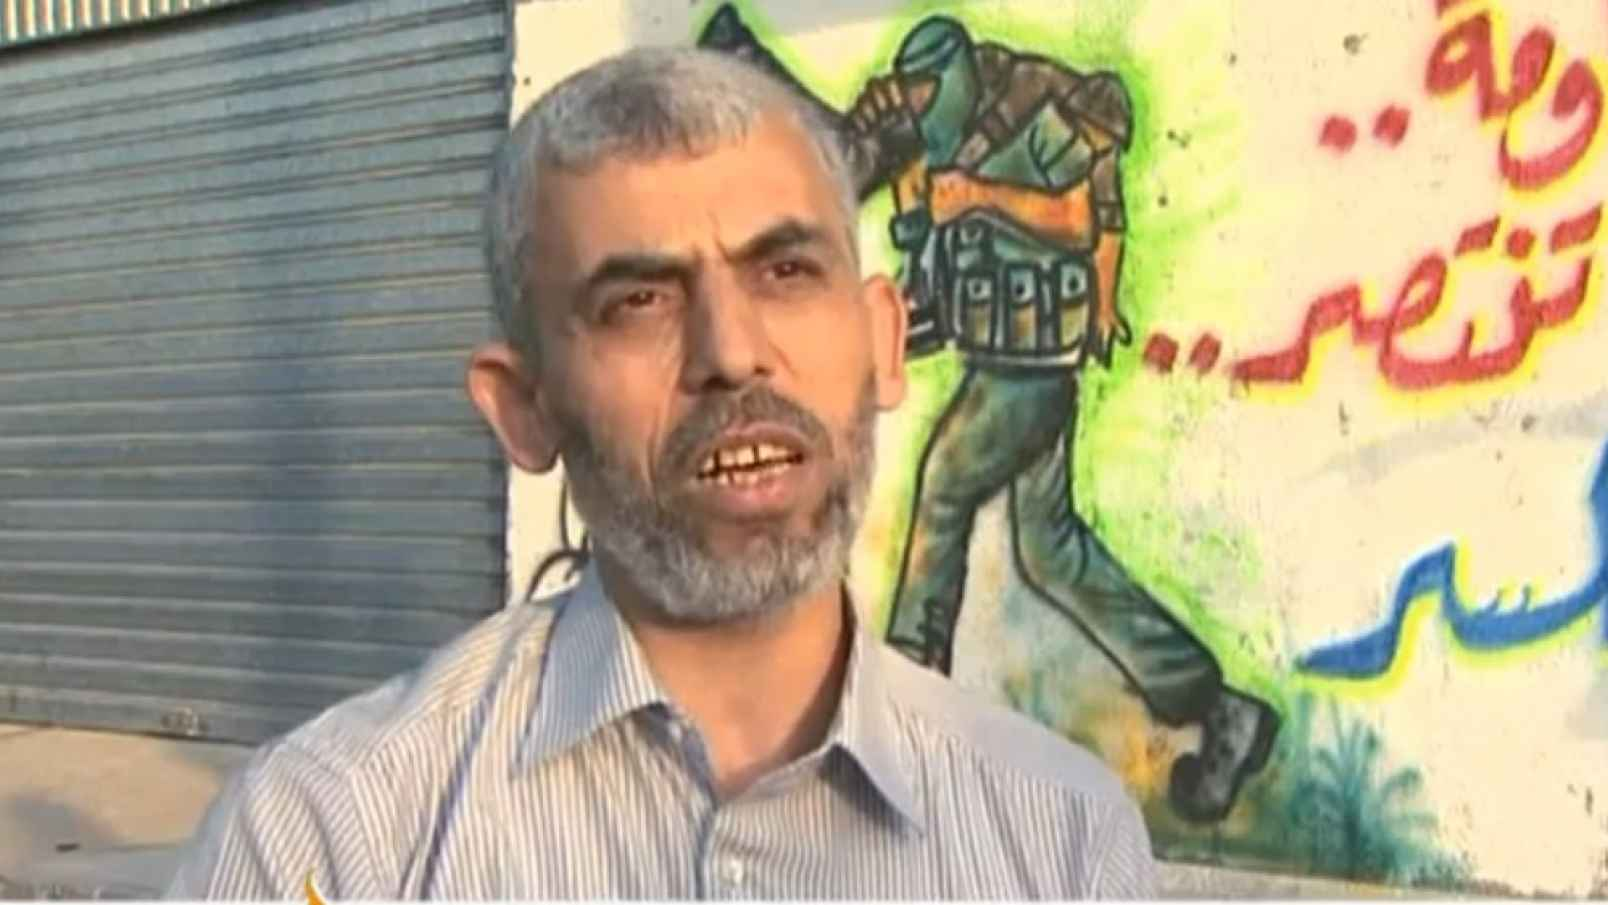 Hamas Top Dog Tells Israel to Deliver Ventilators, Or 'We'll Stop the Breathing of Six Million Israelis' - Frontpagemag